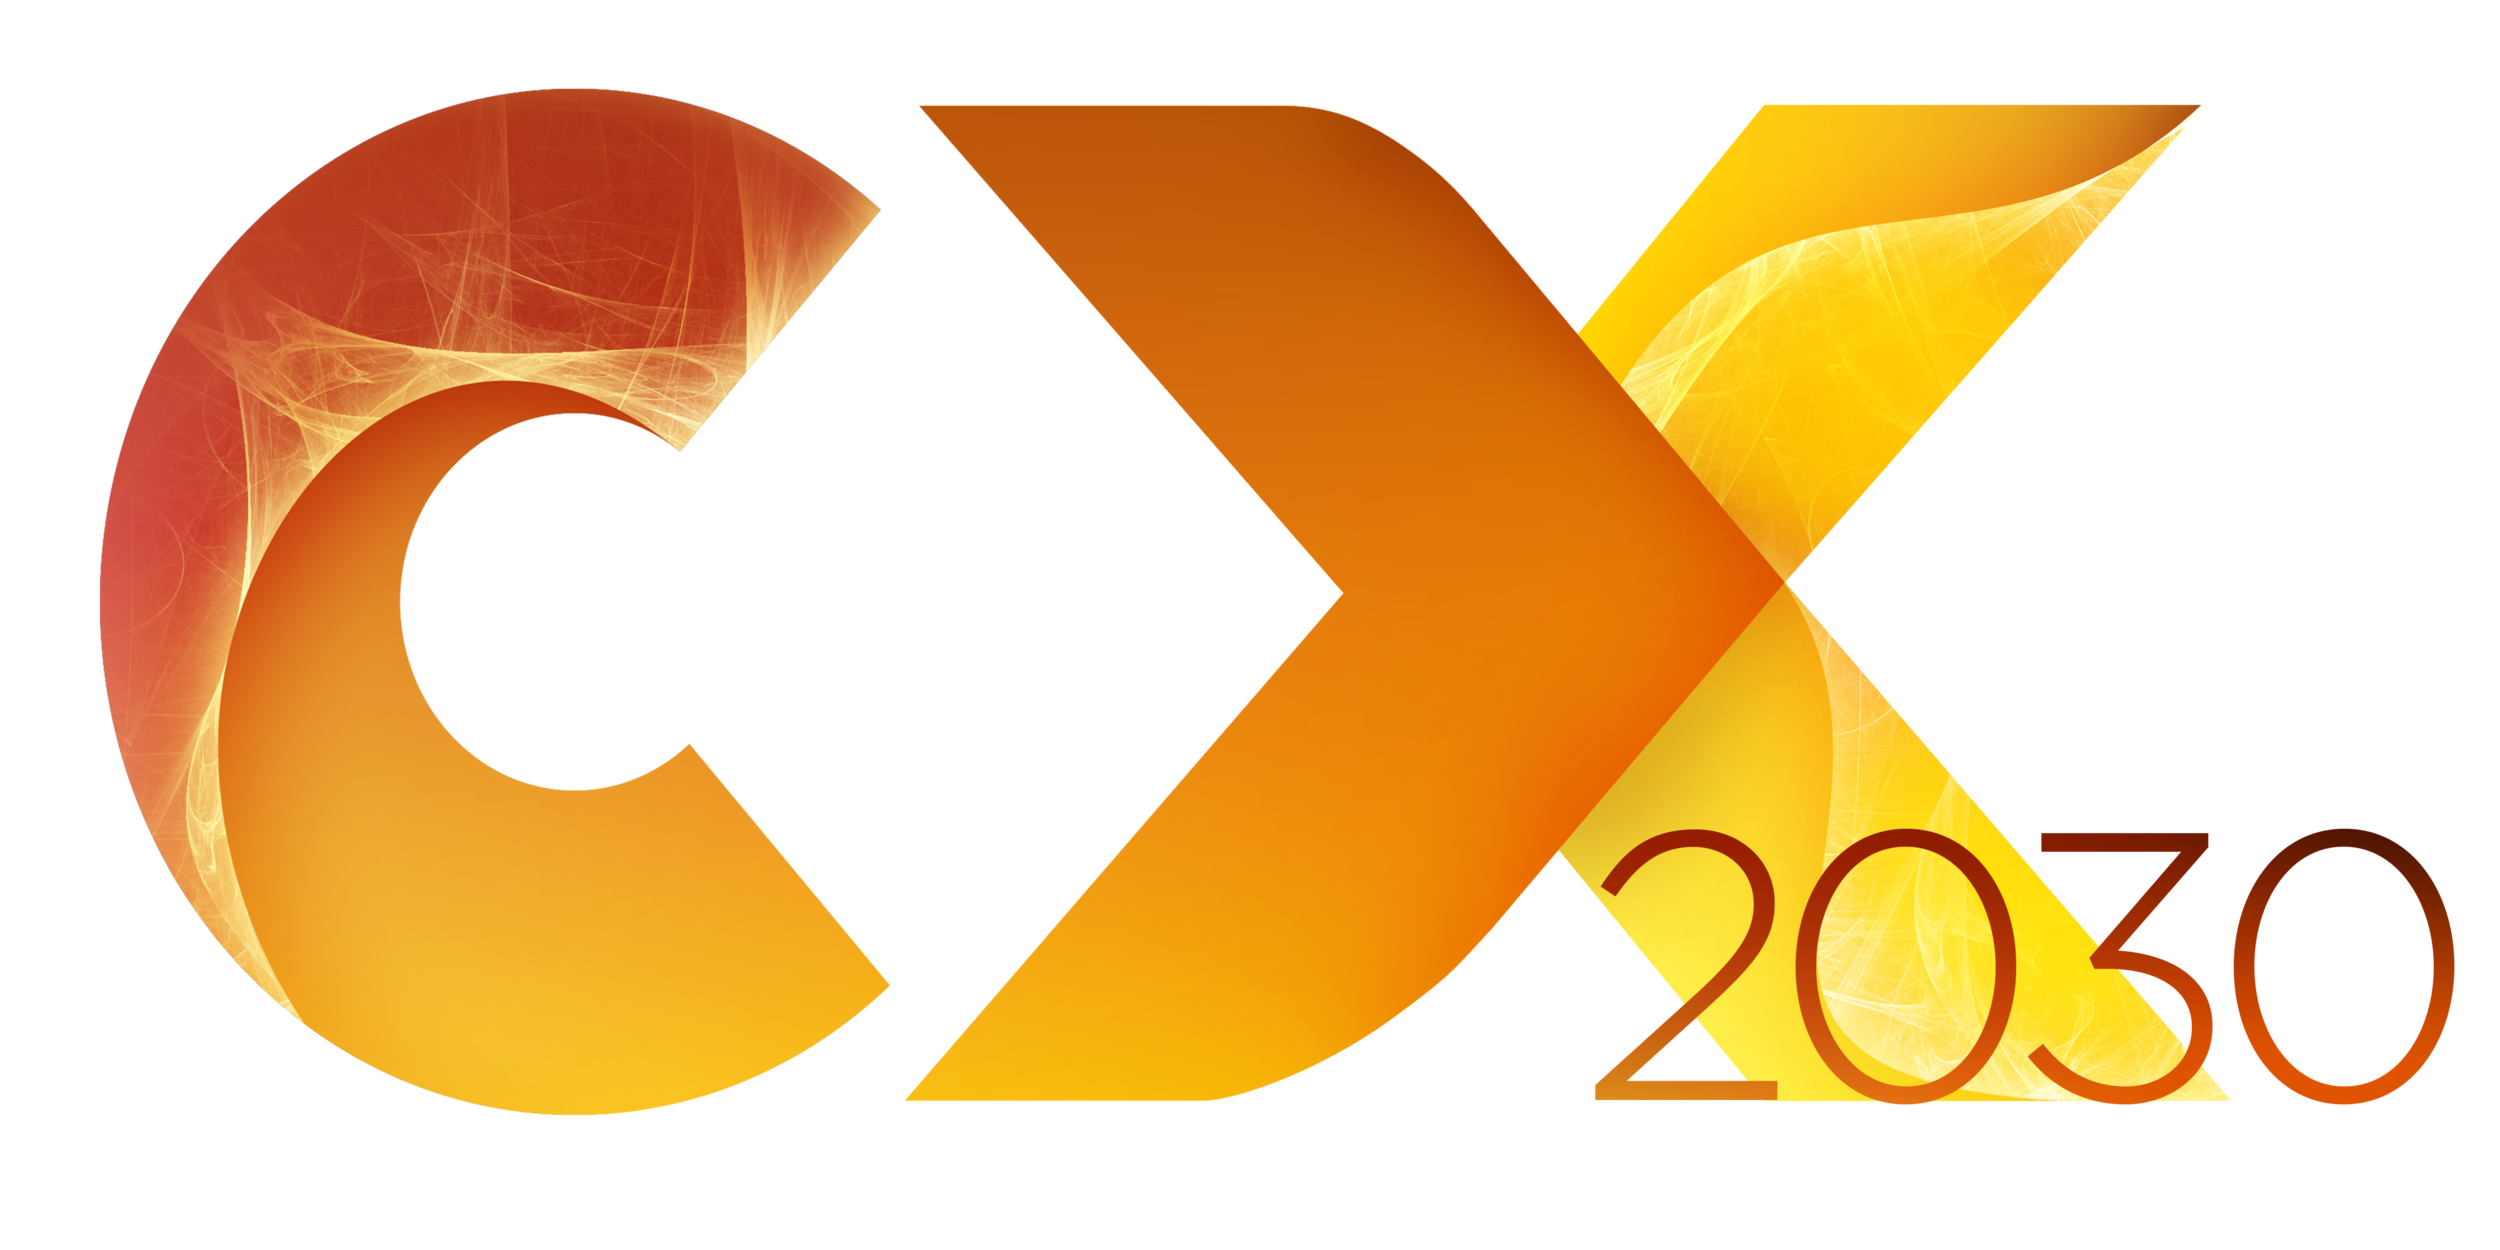 CX2030 logo square.png